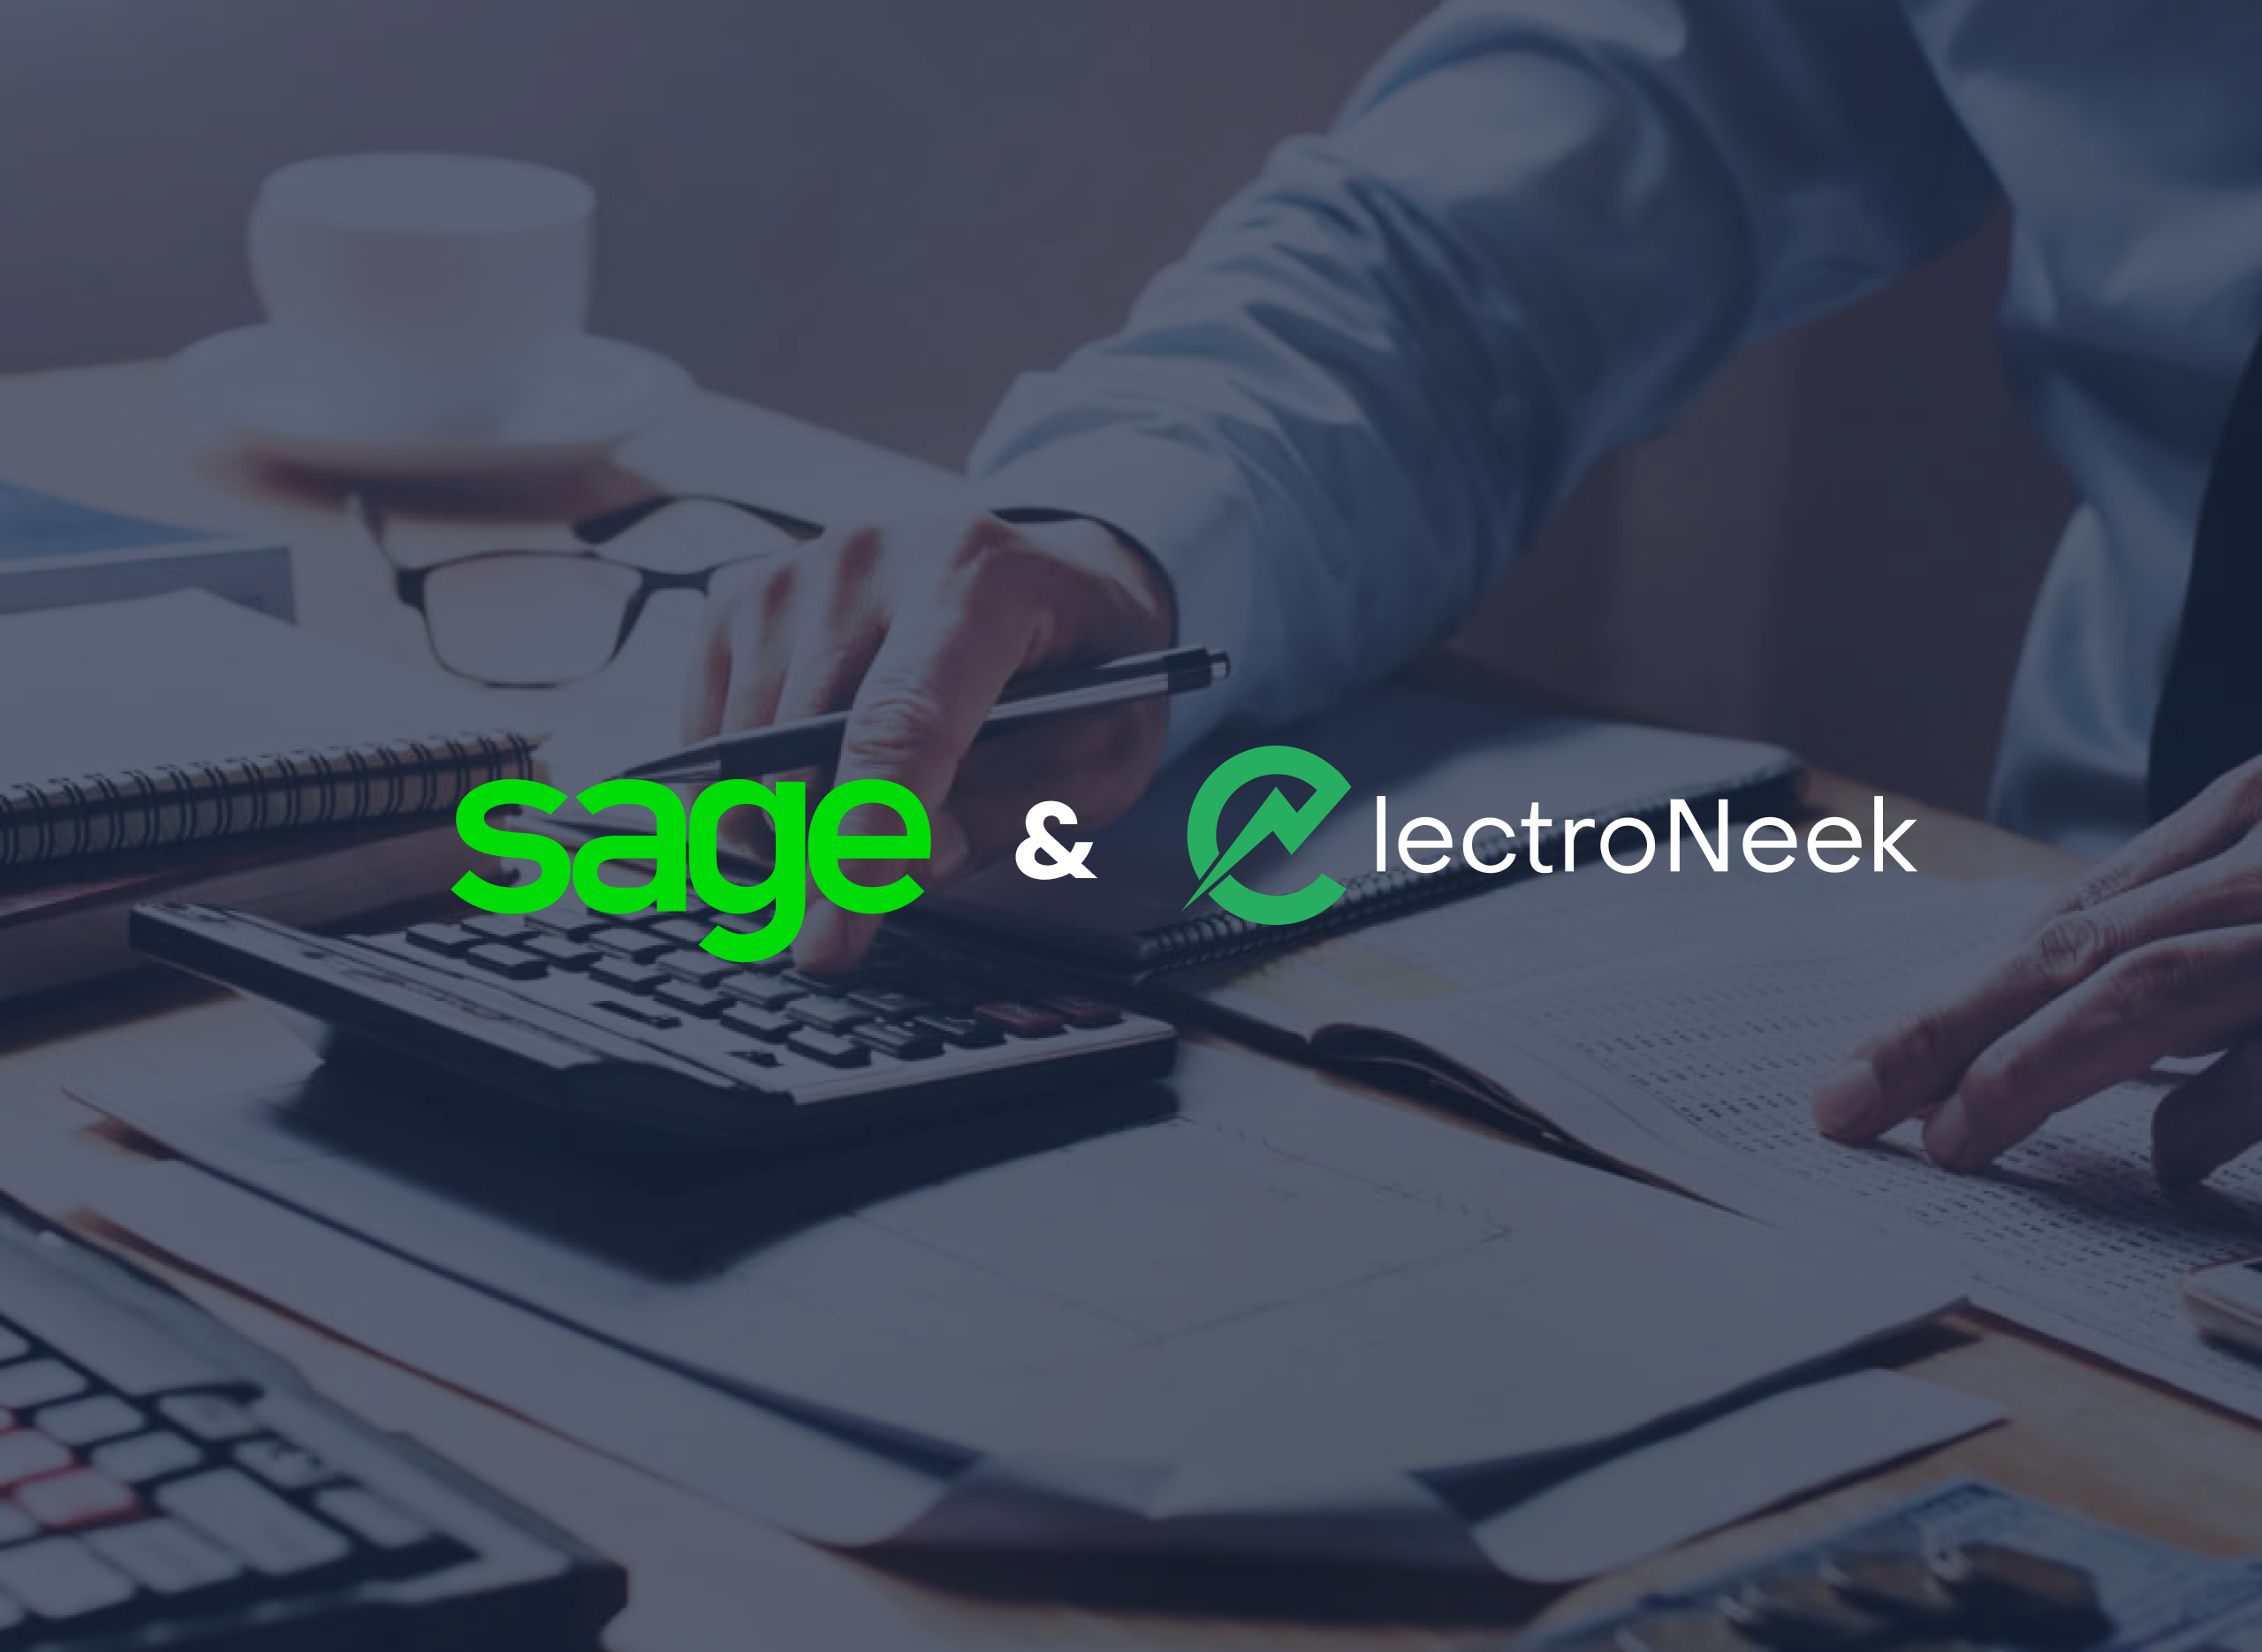 ElectroNeek Partners with Sage to Simplify Automation For Accounting Professionals